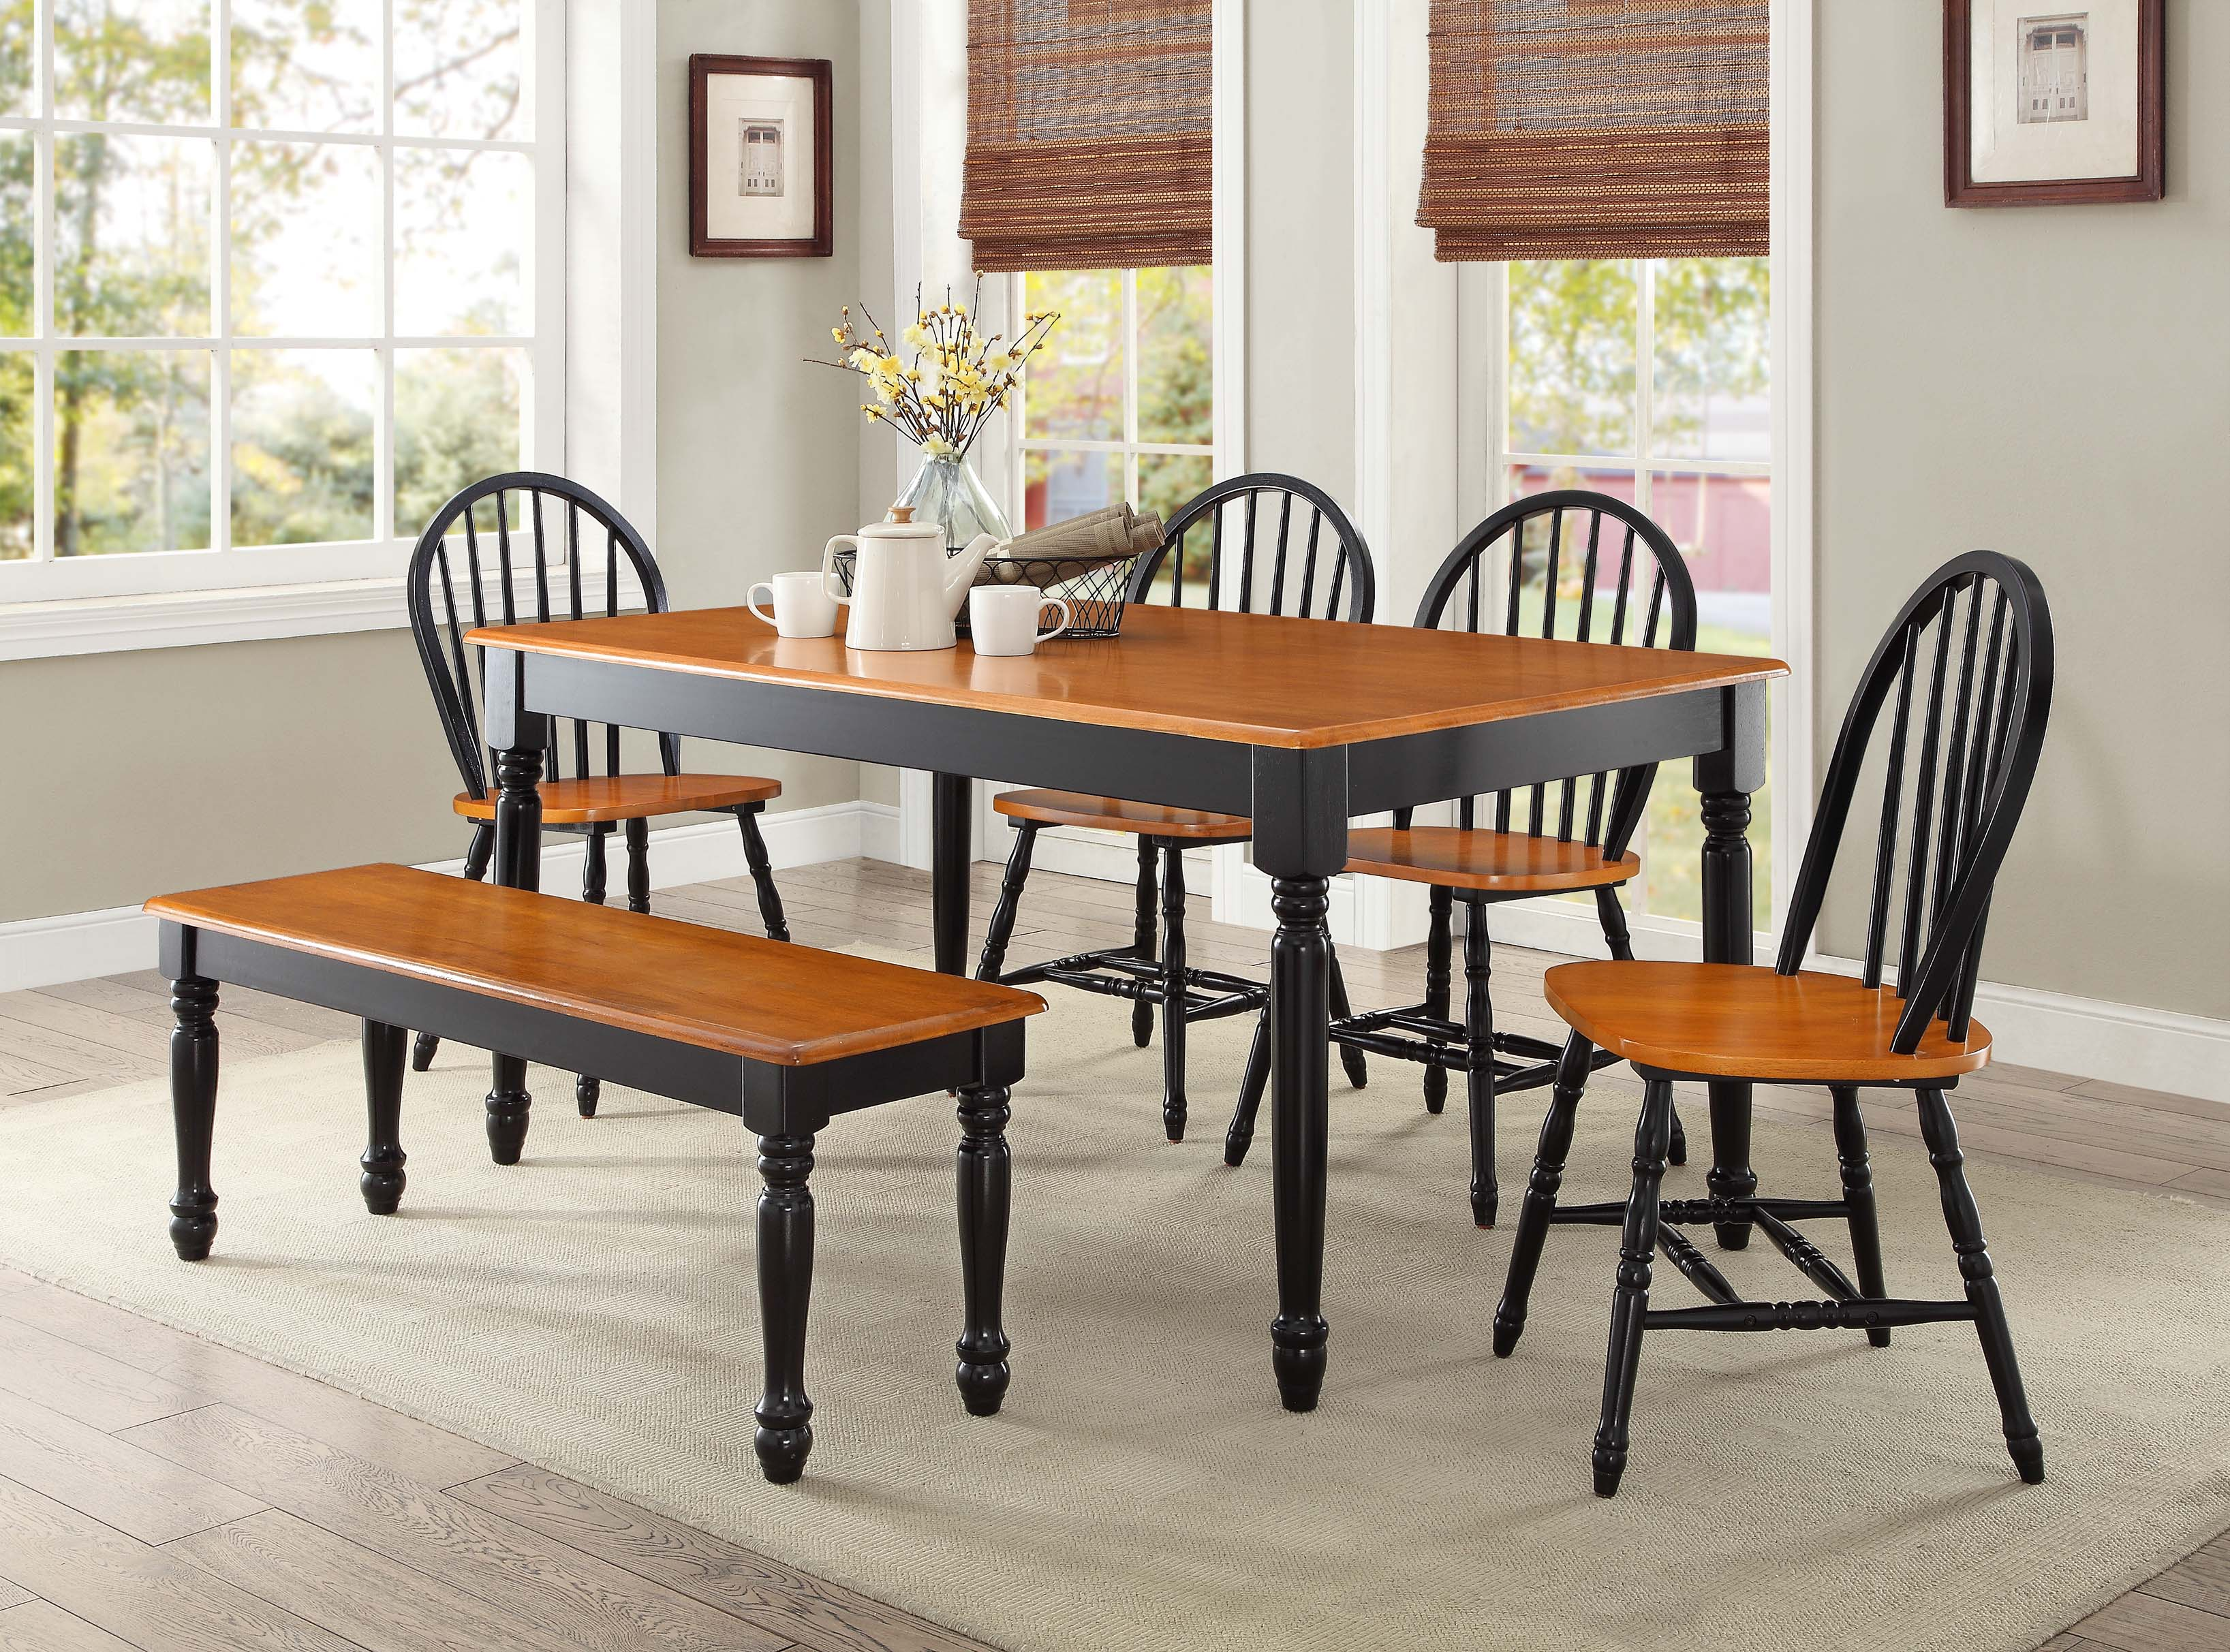 Dining Table Set kitchen & dining furniture - walmart